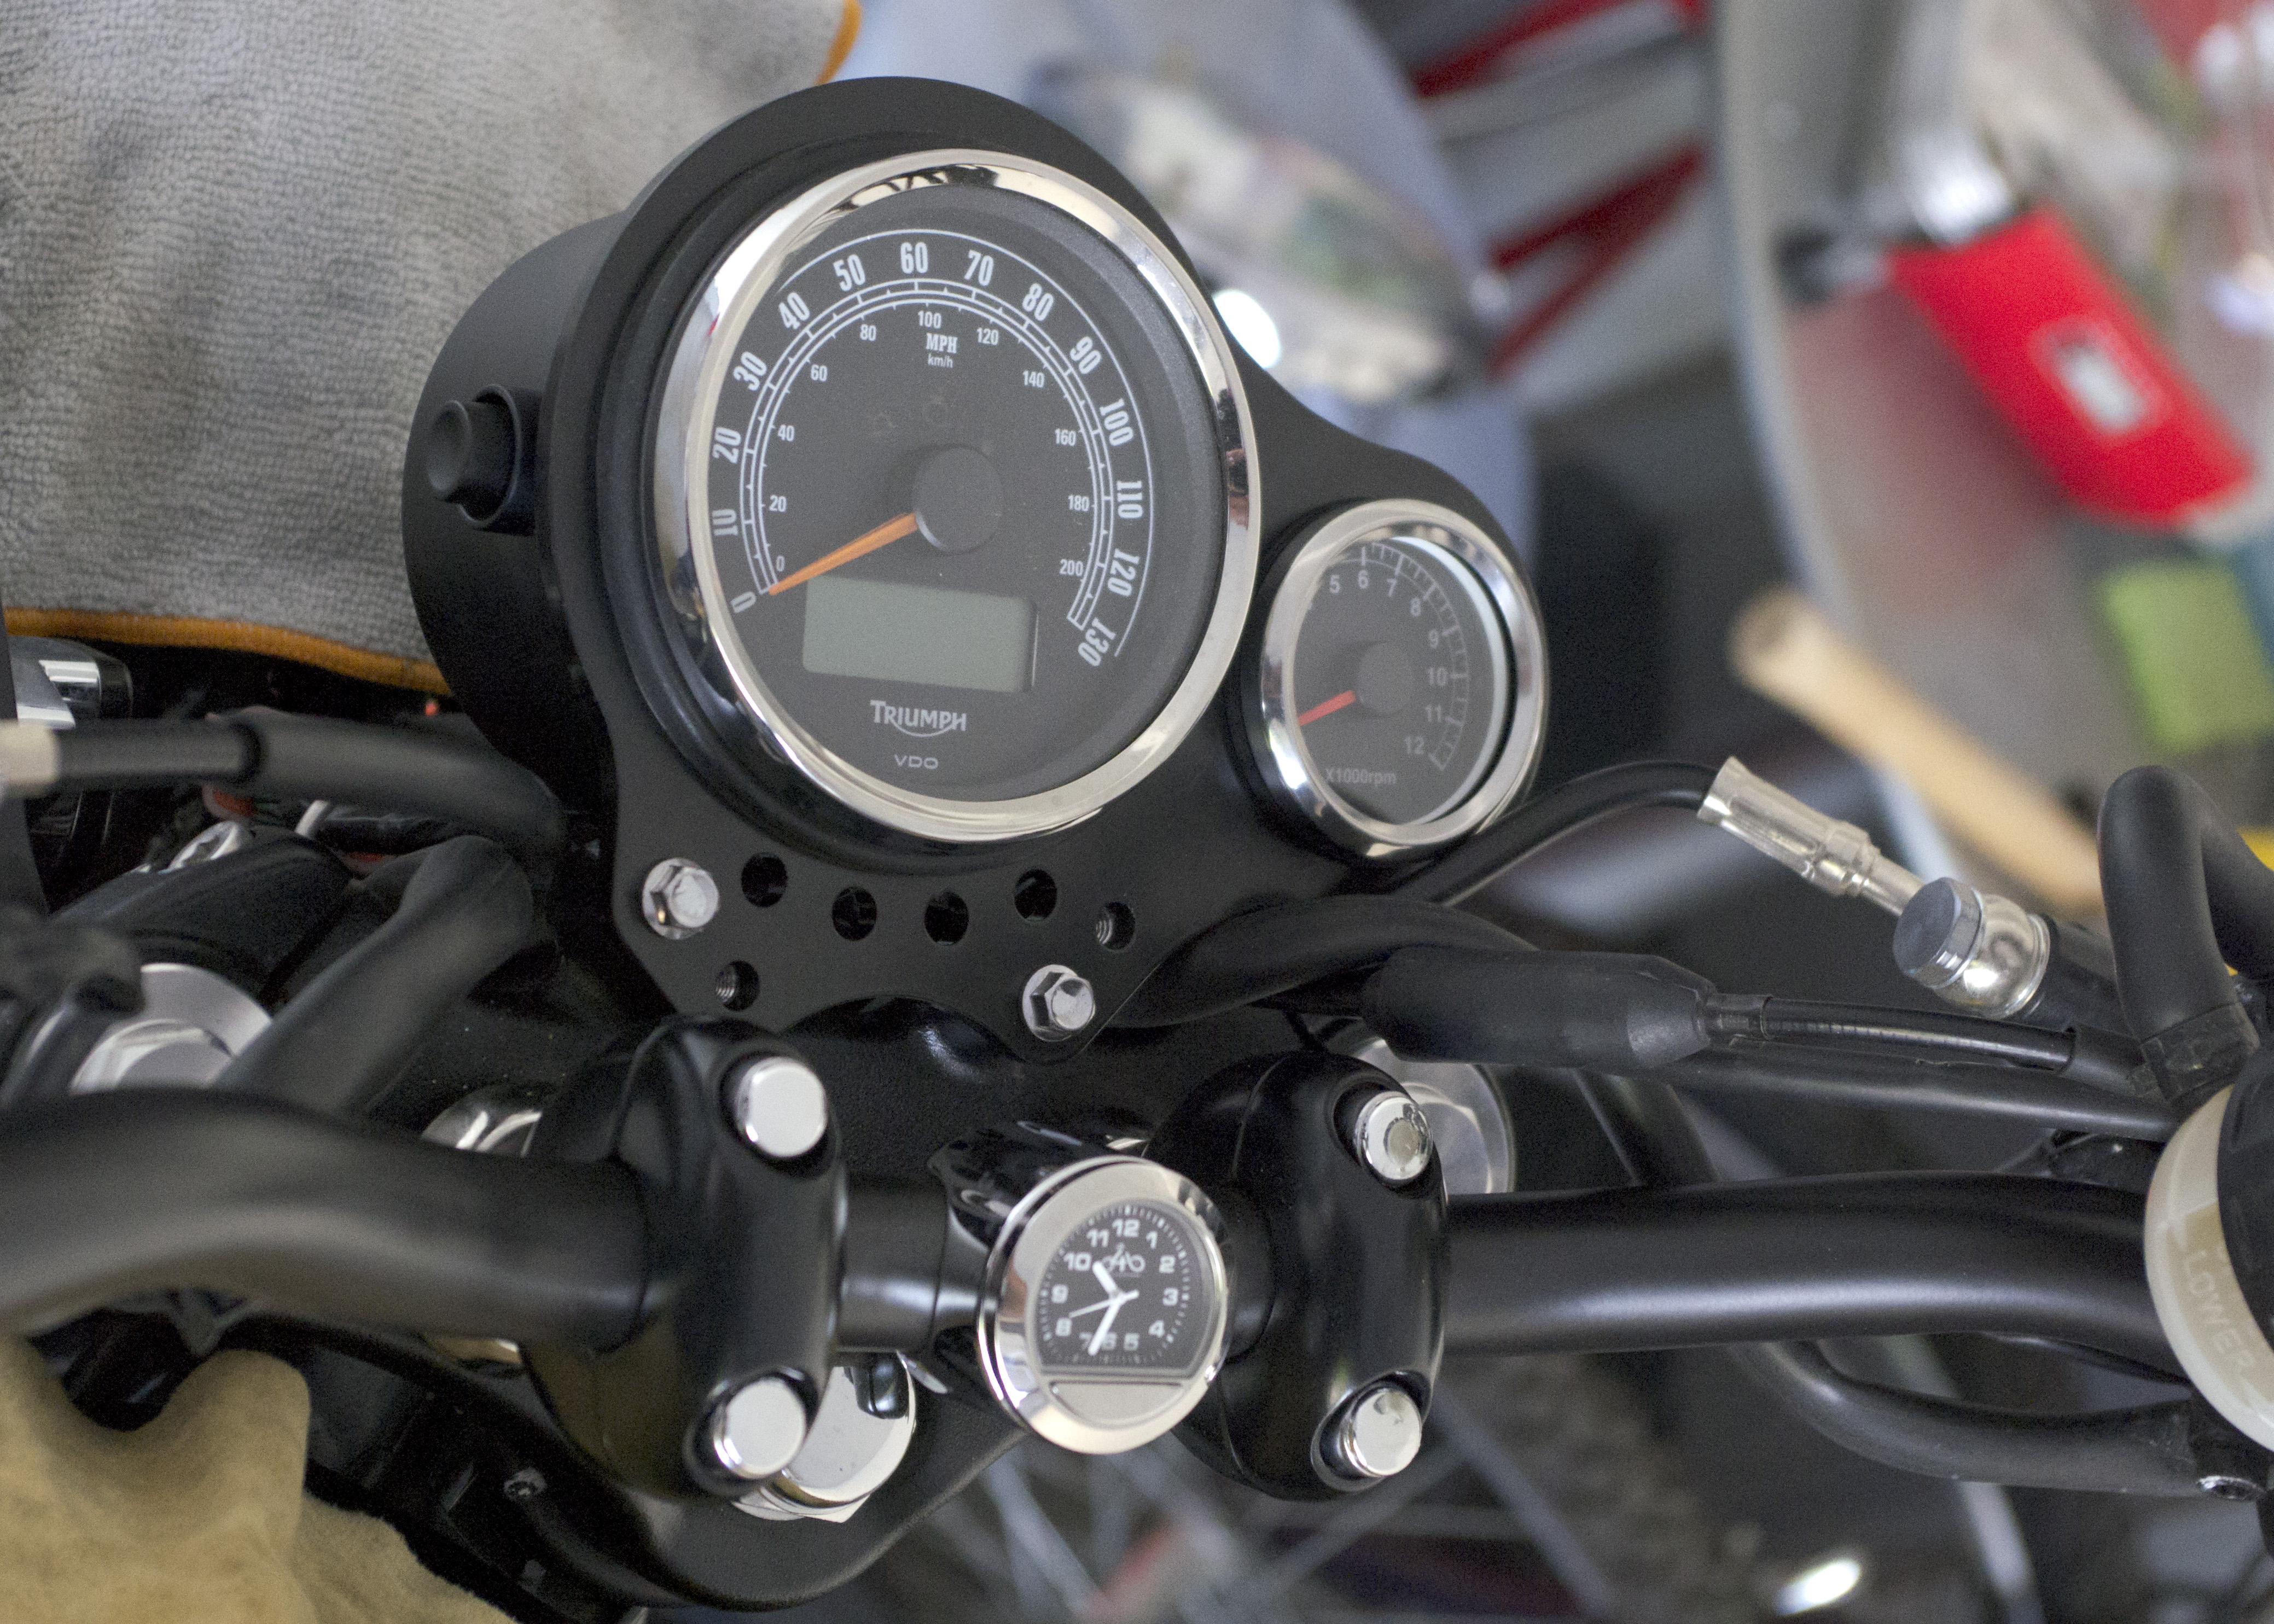 Motorcycle Tach Wiring Diagram : Fit checku201d: first go at installing an aftermarket tach triumph